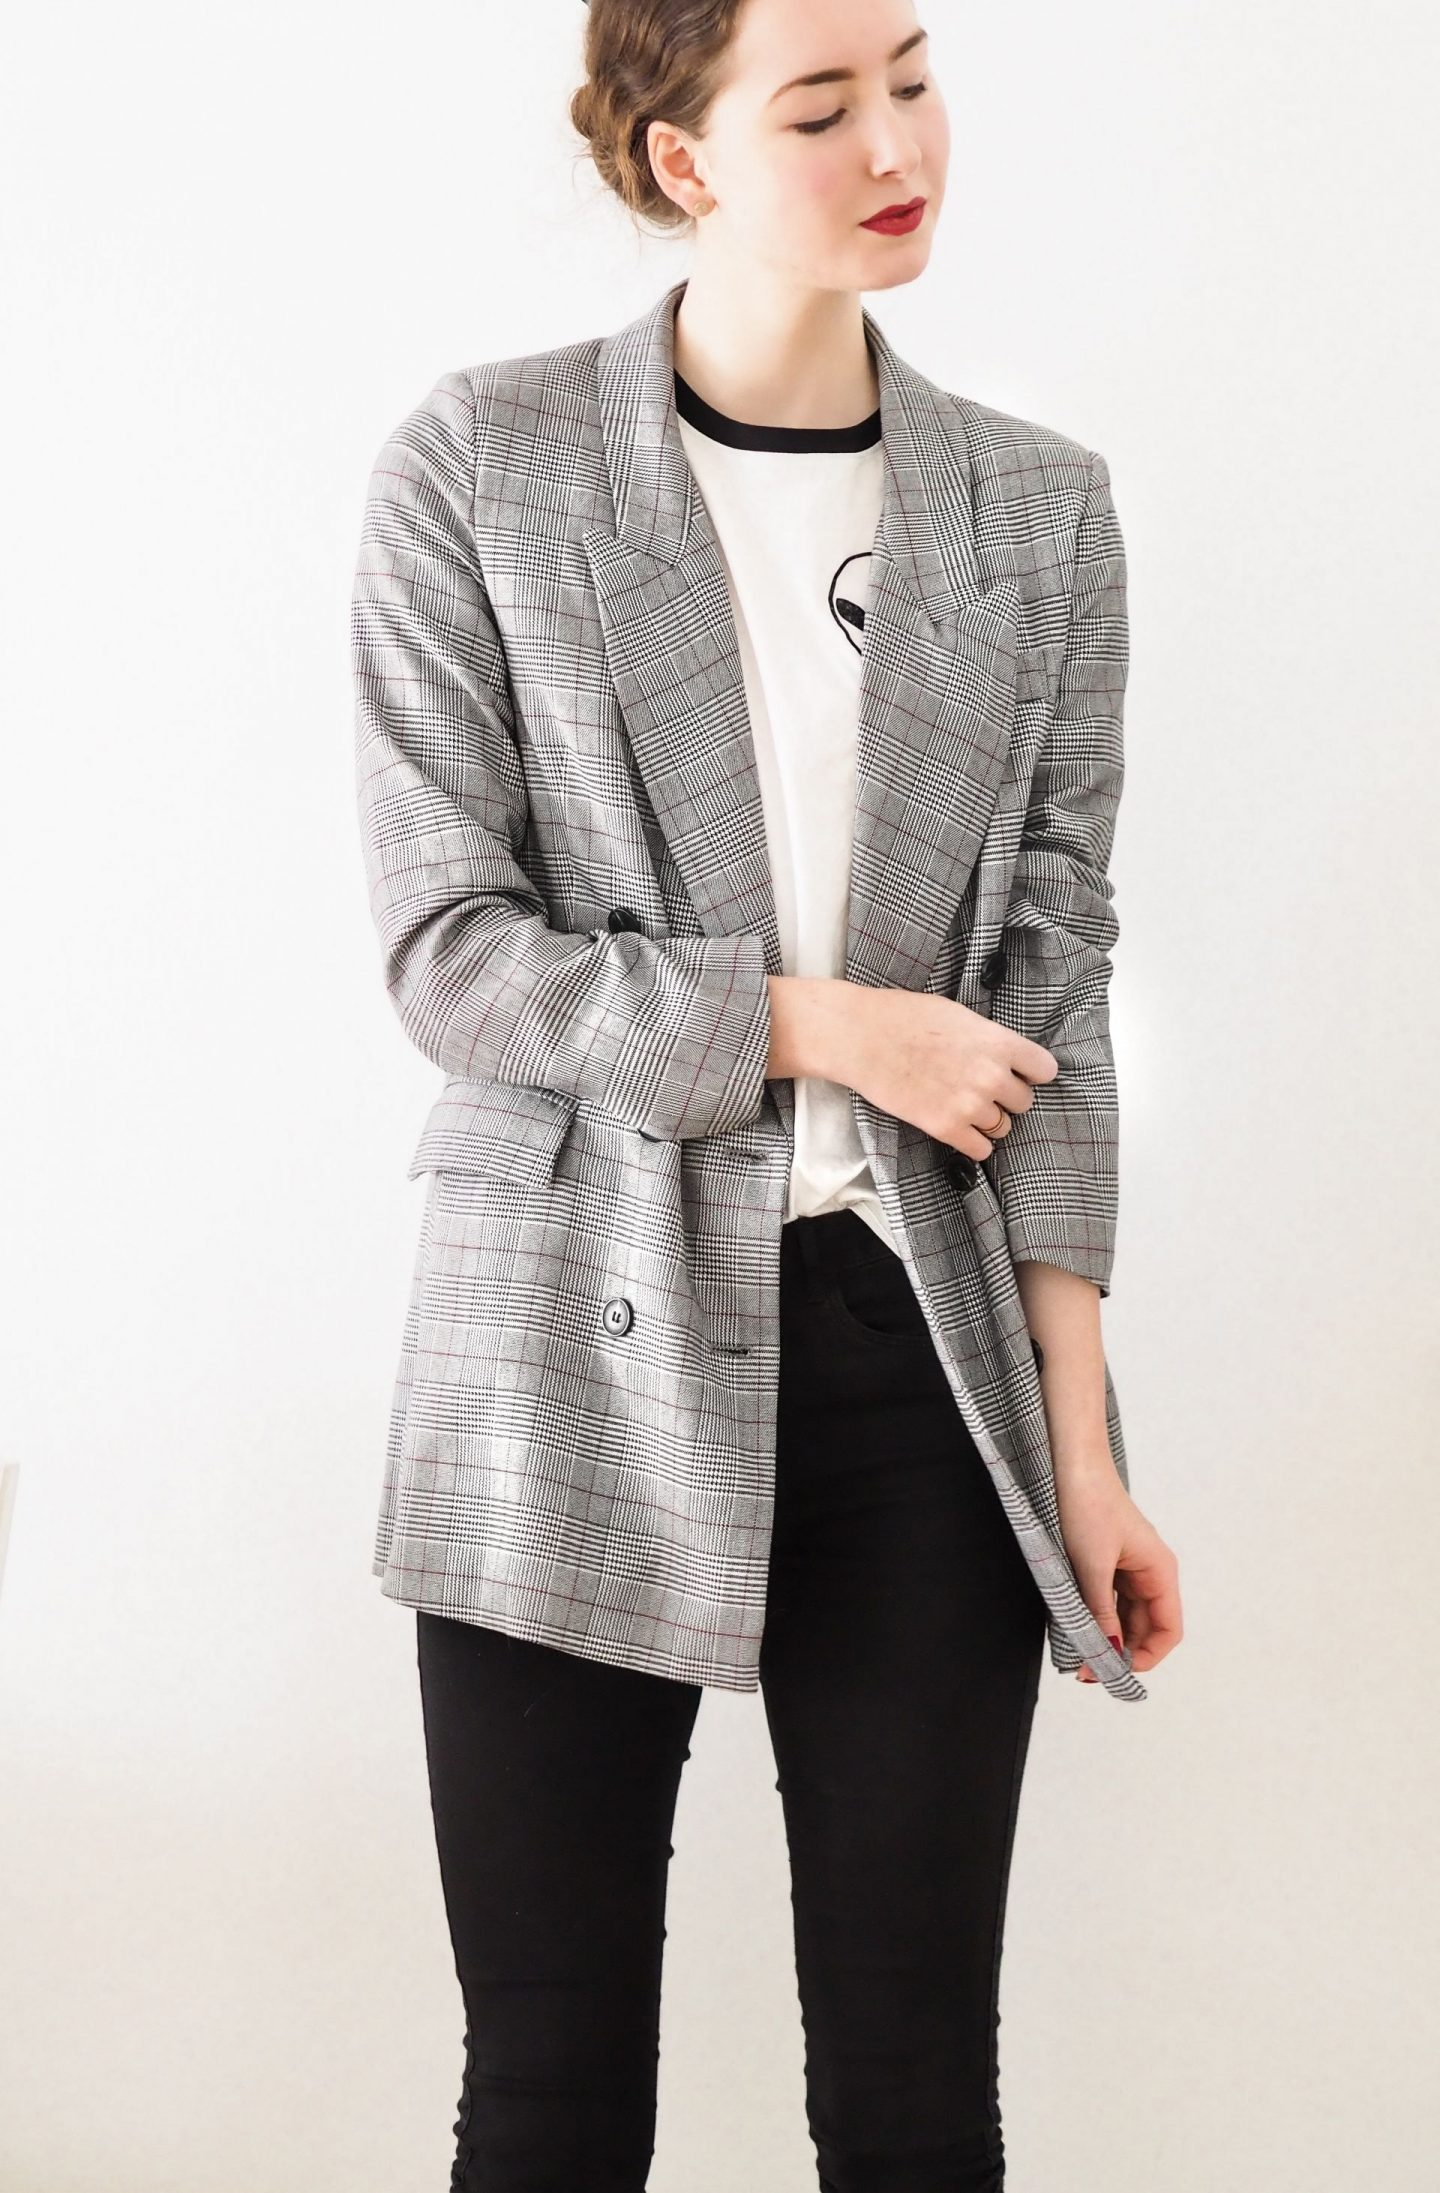 Chic Tailoring AW20 Trends